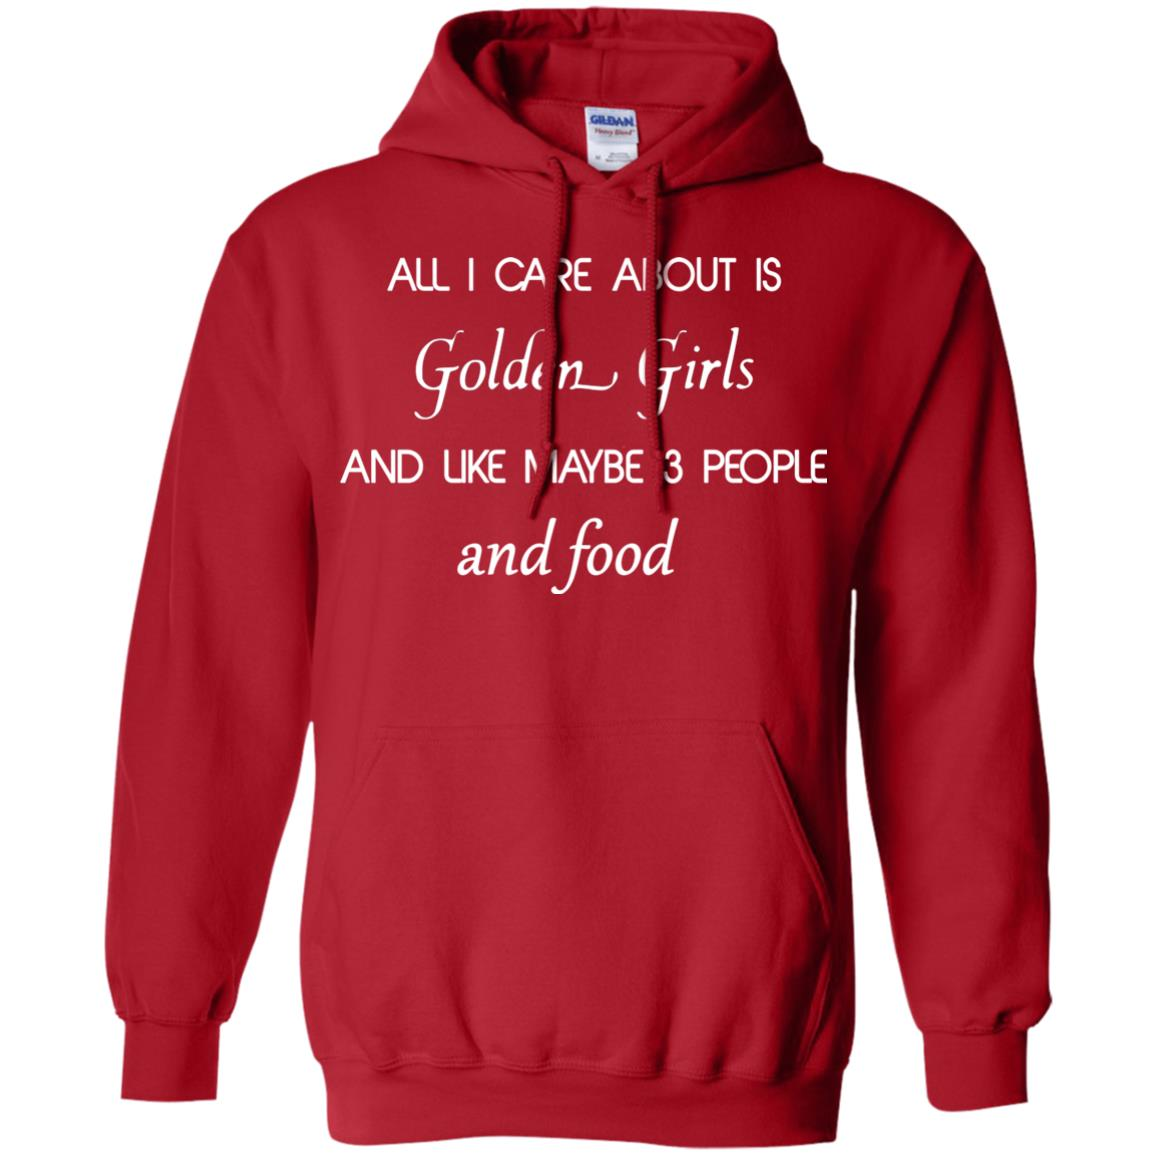 image 2691 - All I Care About Is Golden Girls Shirt, Hoodie